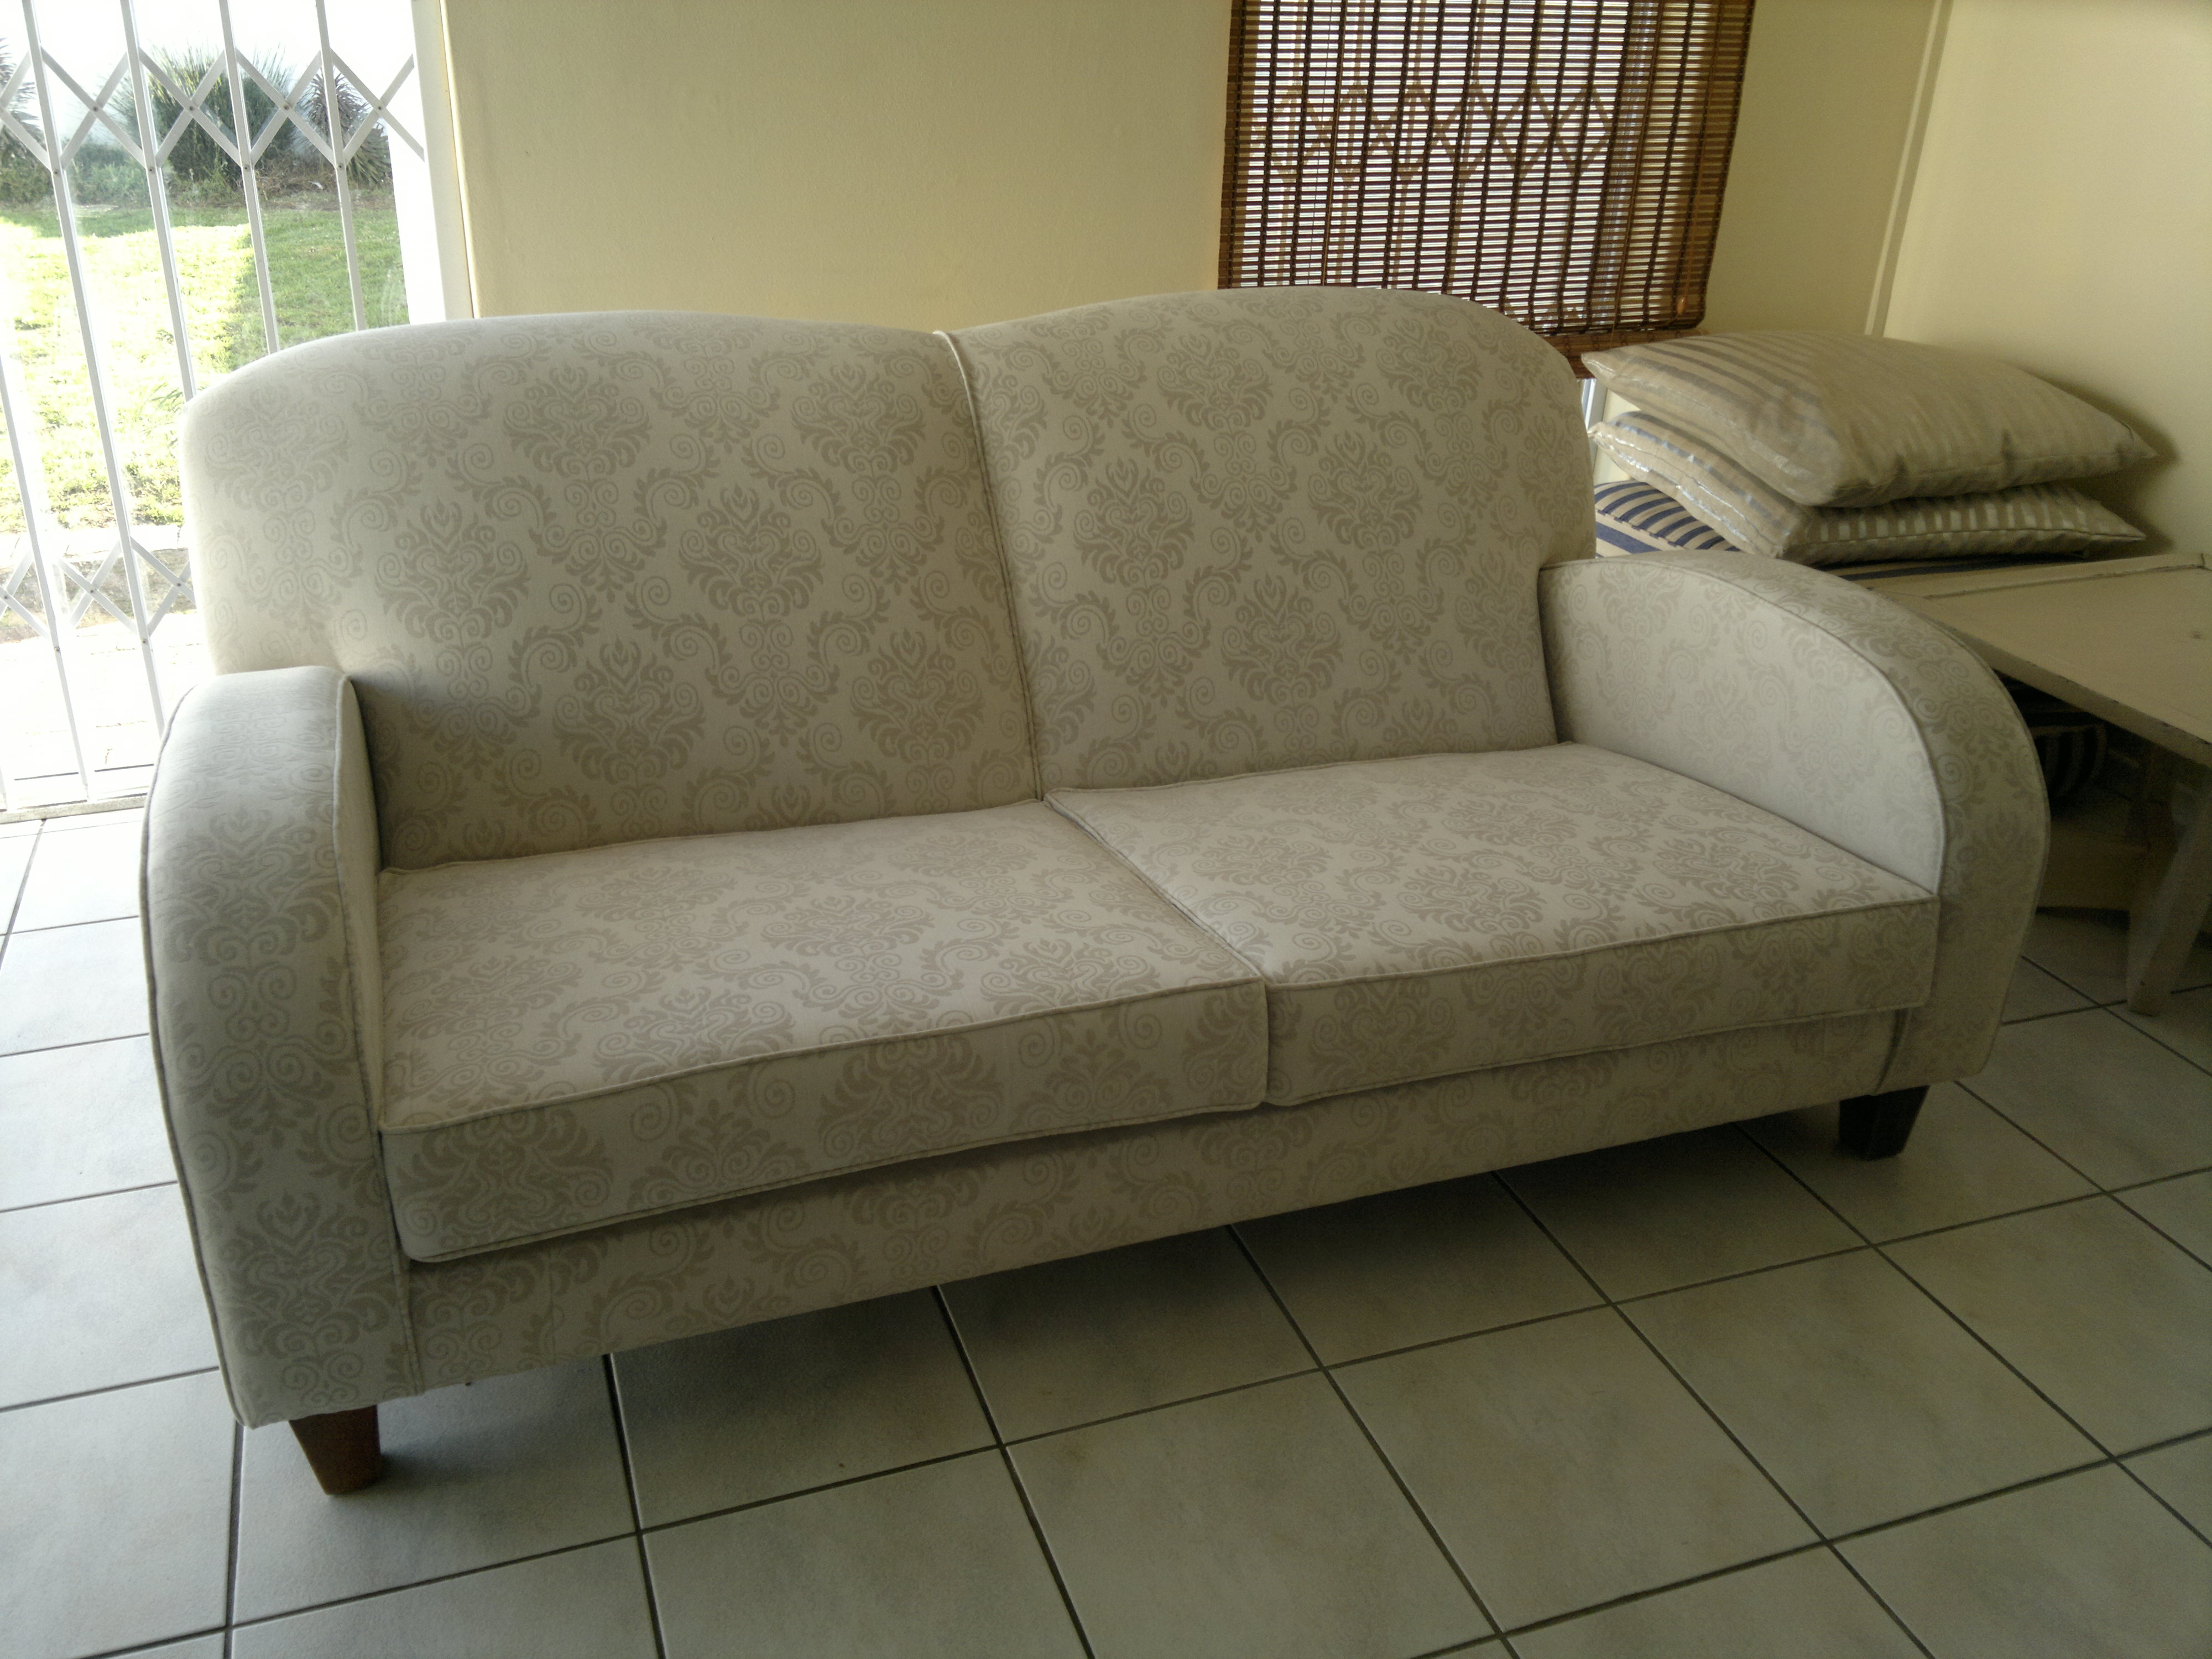 Sofa upholstery upholstery cape town for Recover furniture cape town